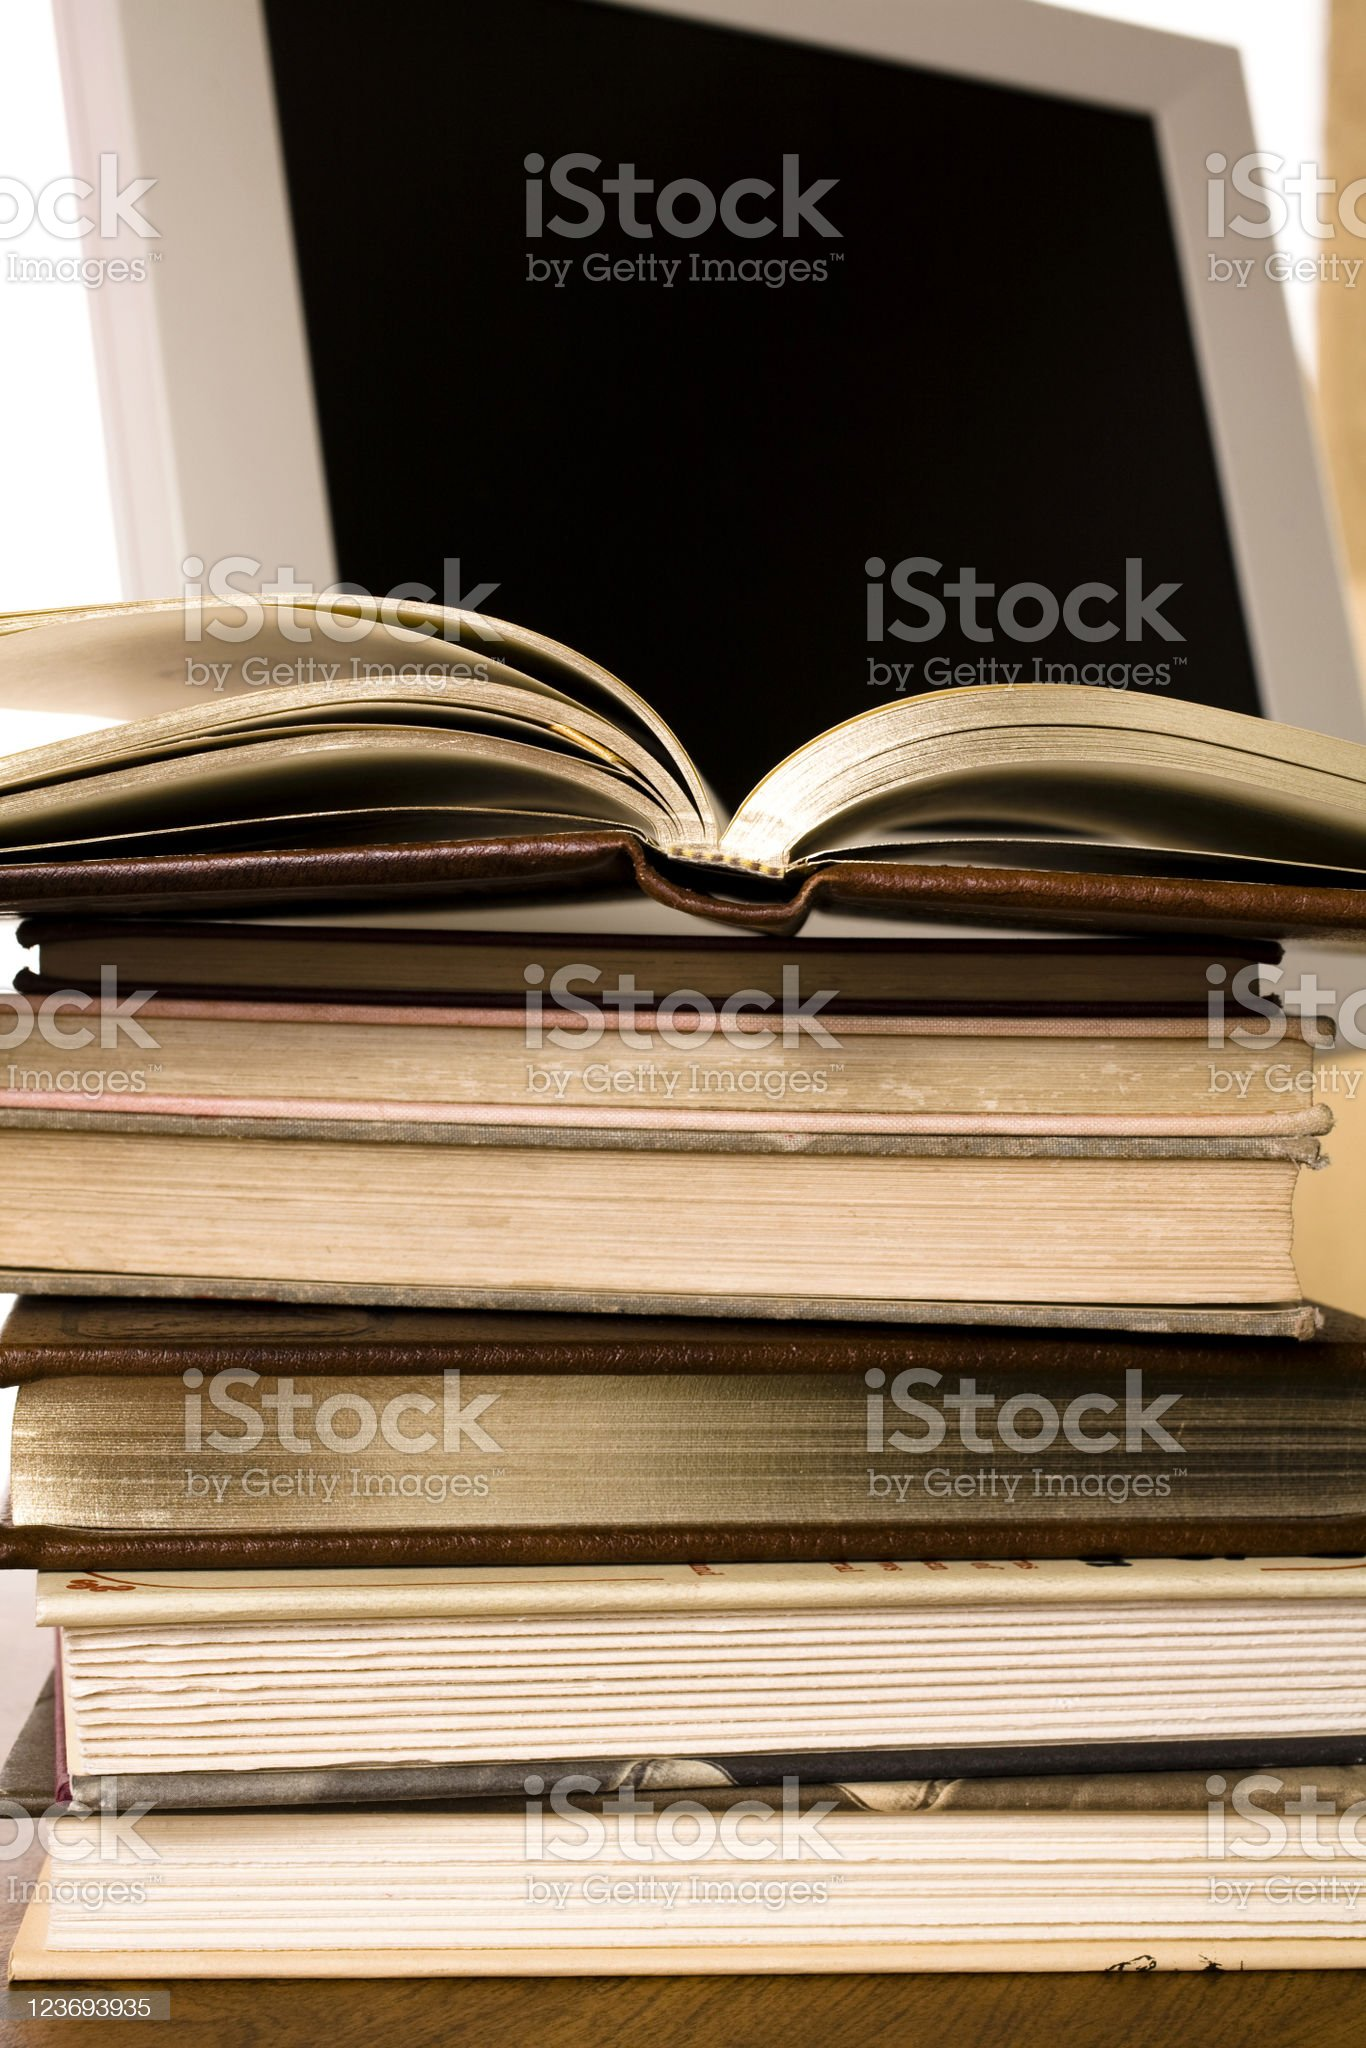 Stack of books in front the computer monitor royalty-free stock photo